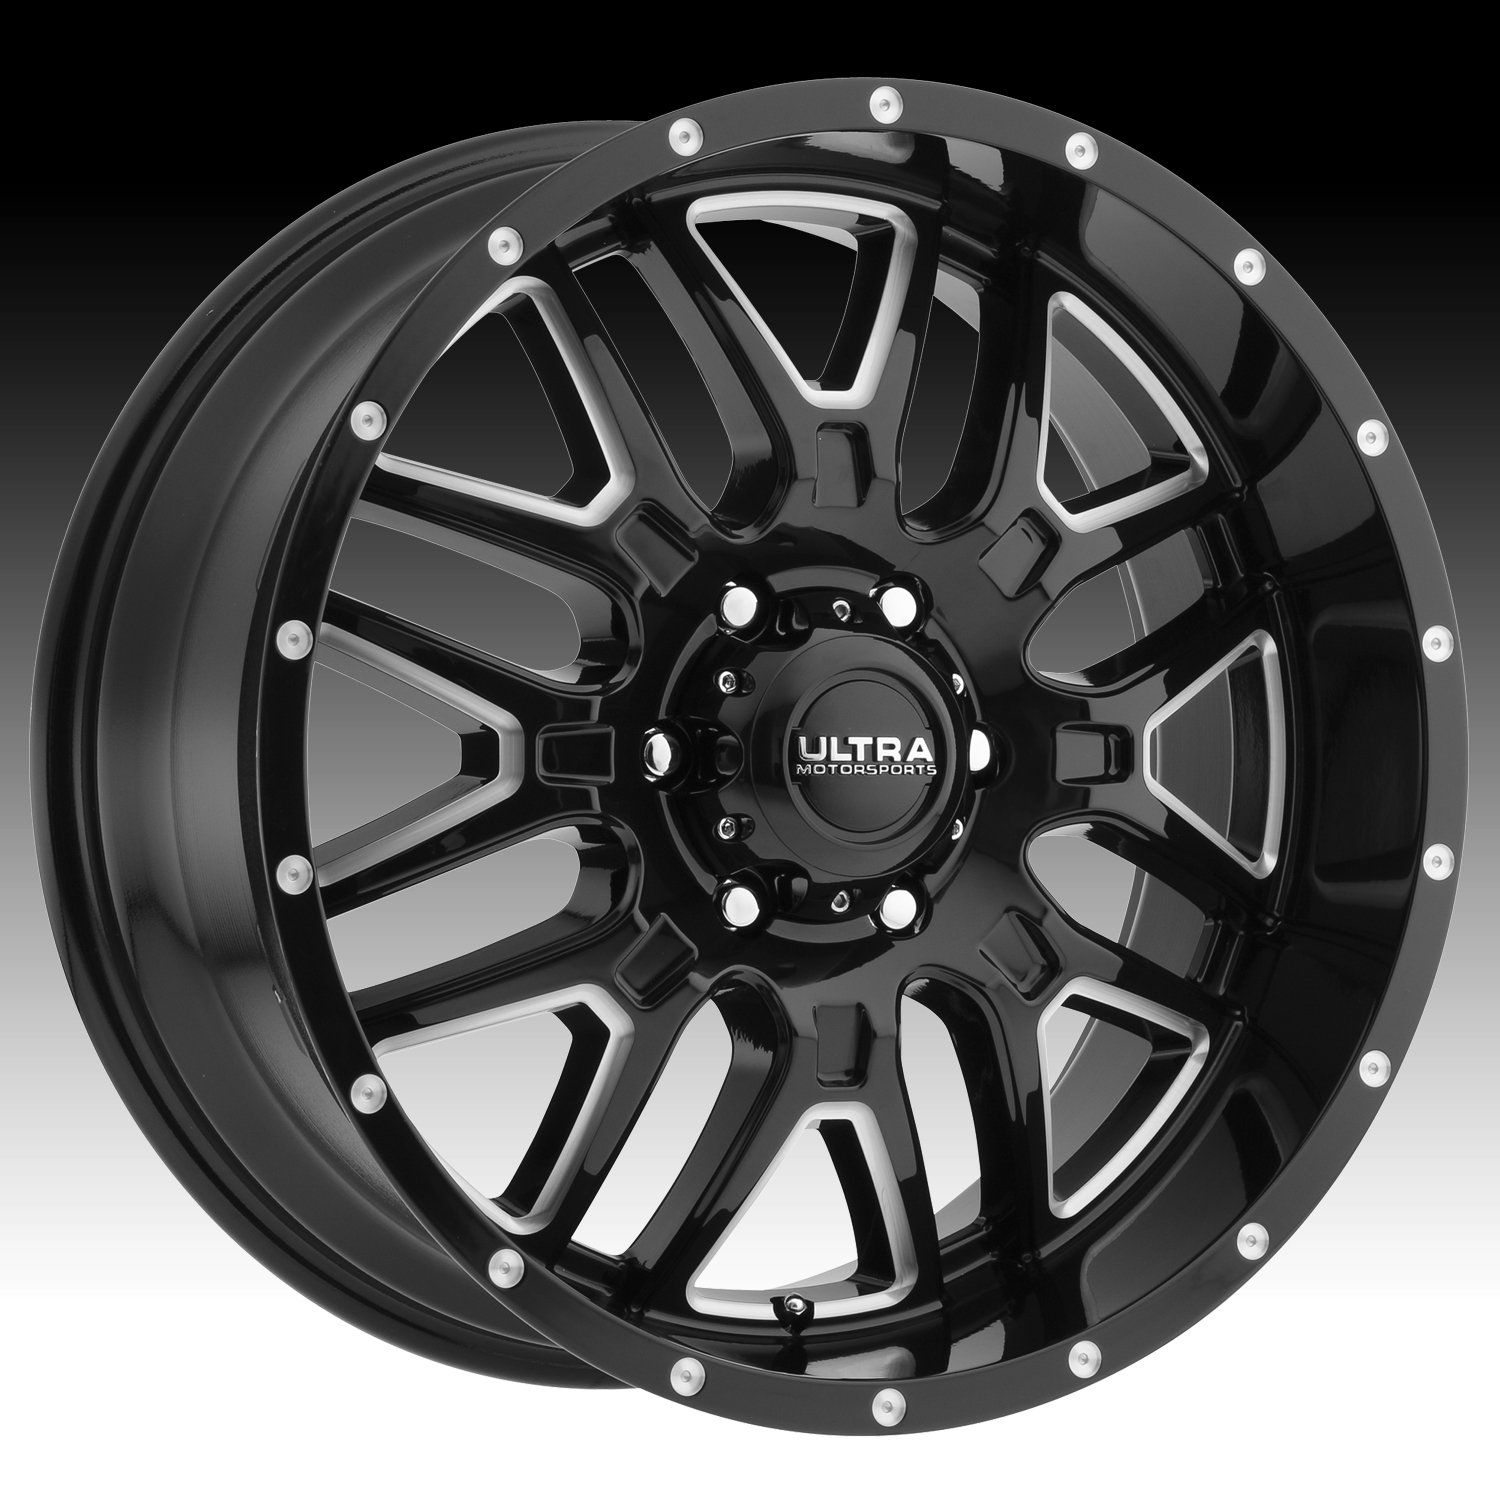 Ultra 203BM Hunter 17x9 6x139.7 +12mm Black/Milled Wheel Rim